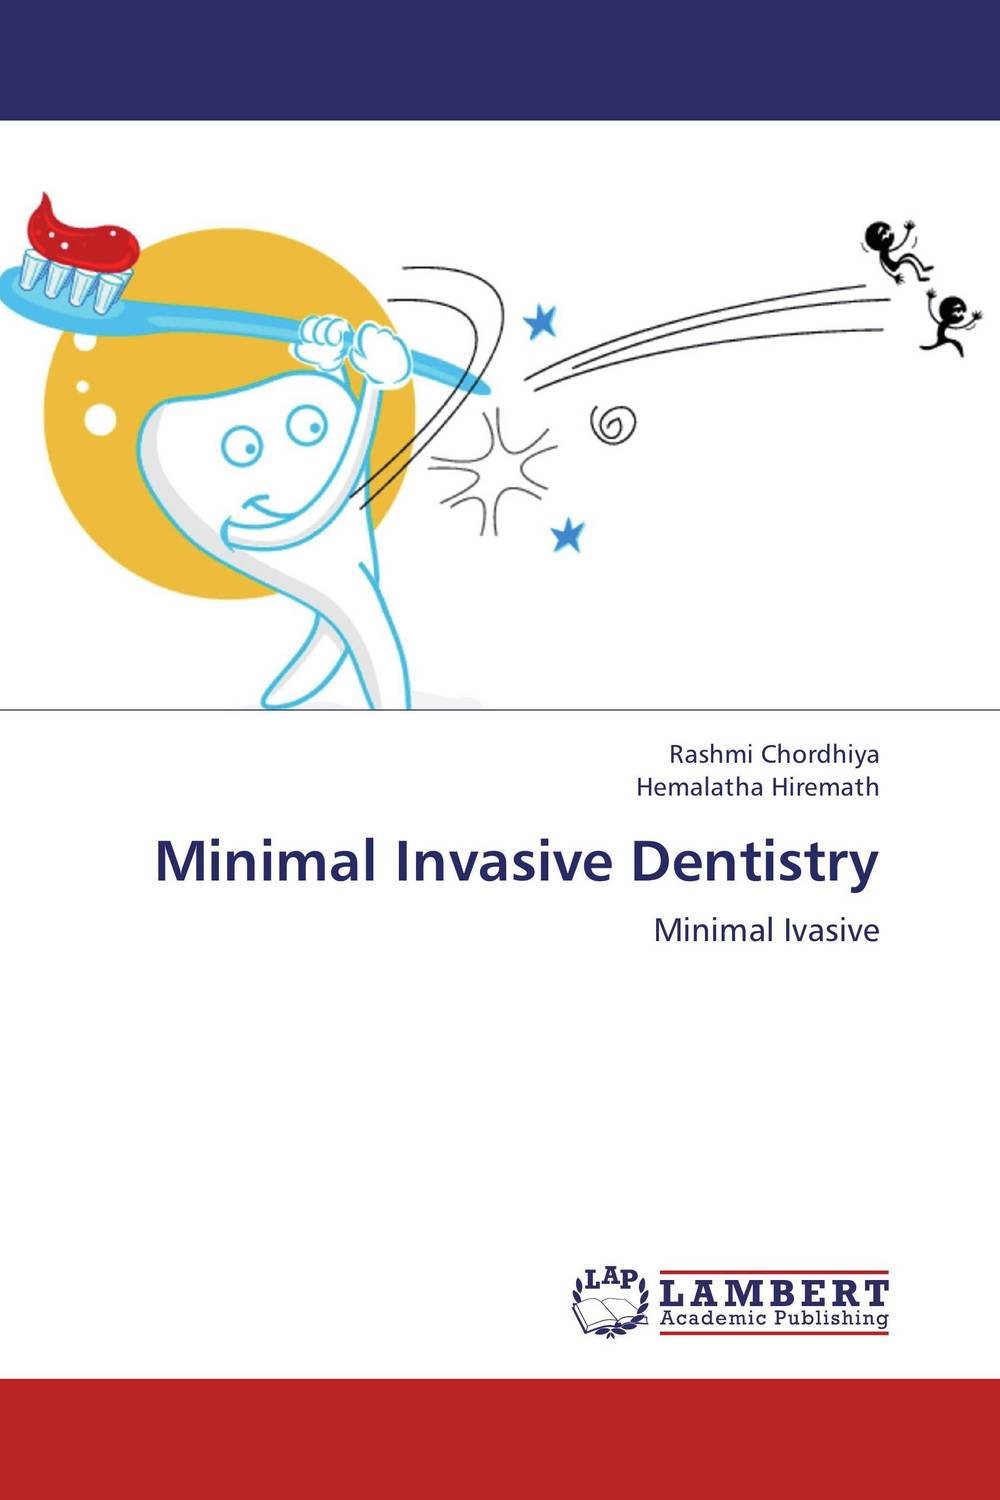 Minimal Invasive Dentistry simranjeet kaur amaninder singh and pranav gupta surface properties of dental materials under simulated tooth wear